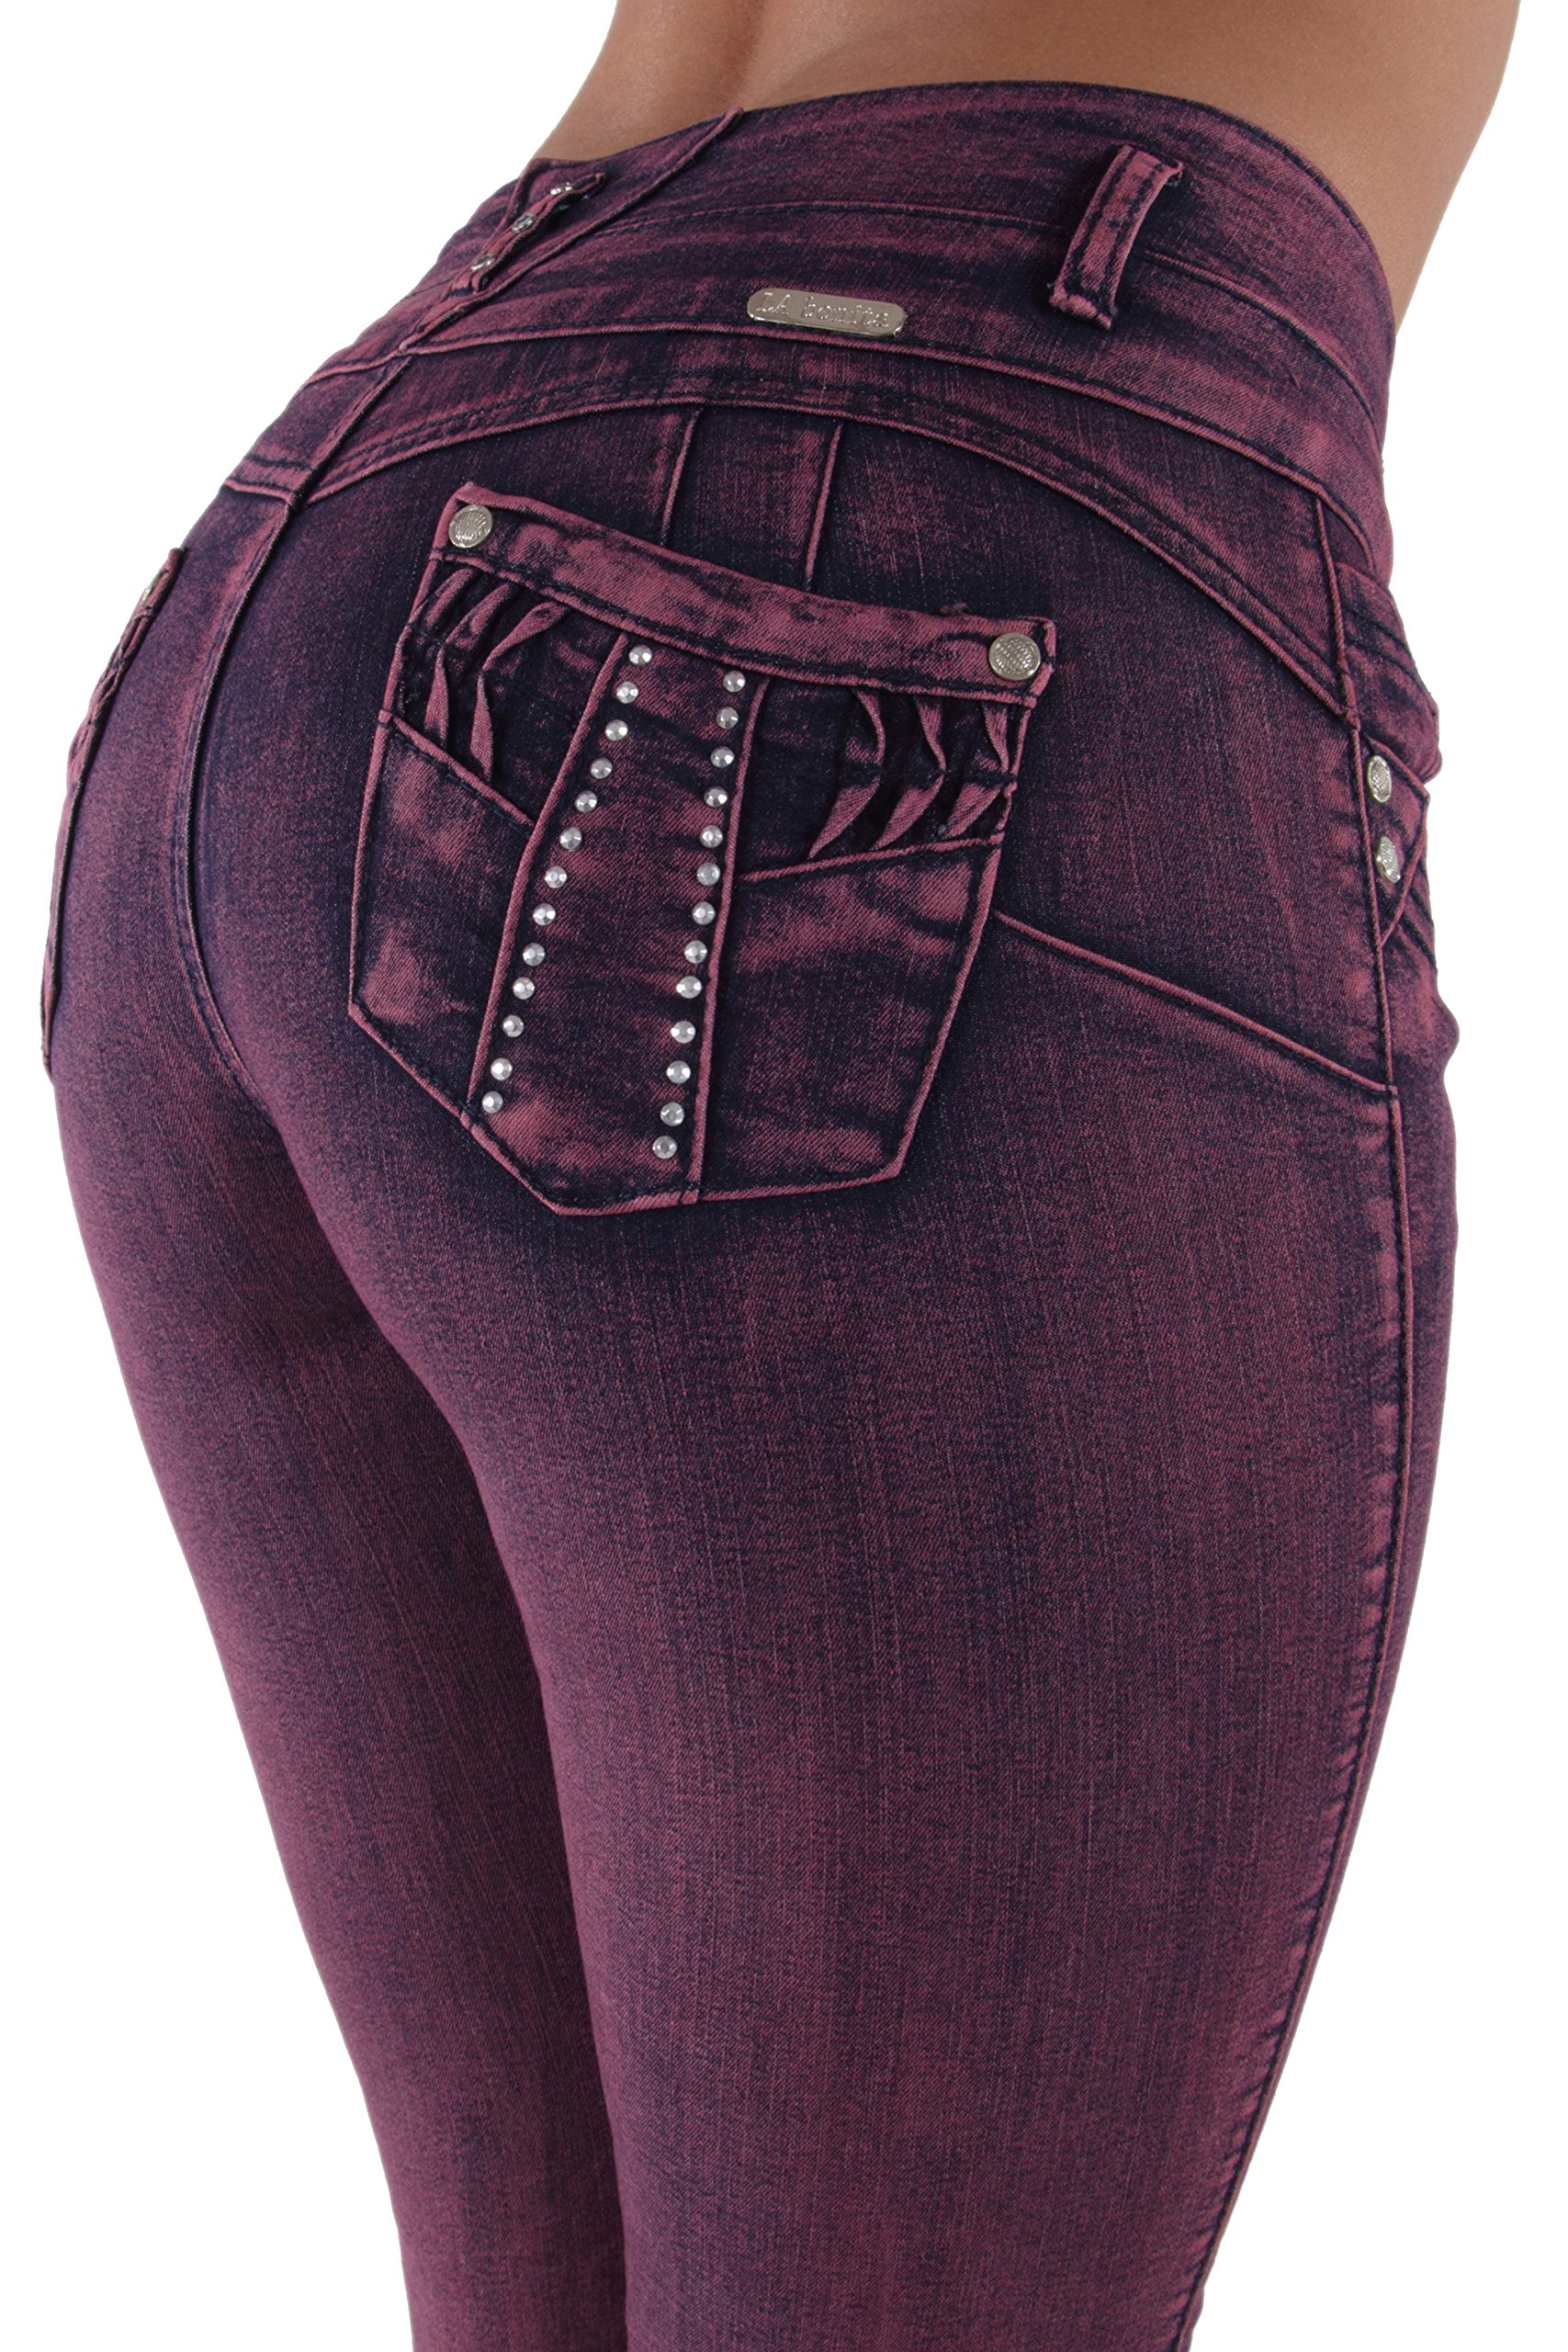 7Ae190MS - Plus Size, Butt Lift, Levanta Cola, Premium Skinny Jeans in Dark Pink Wash Size 22